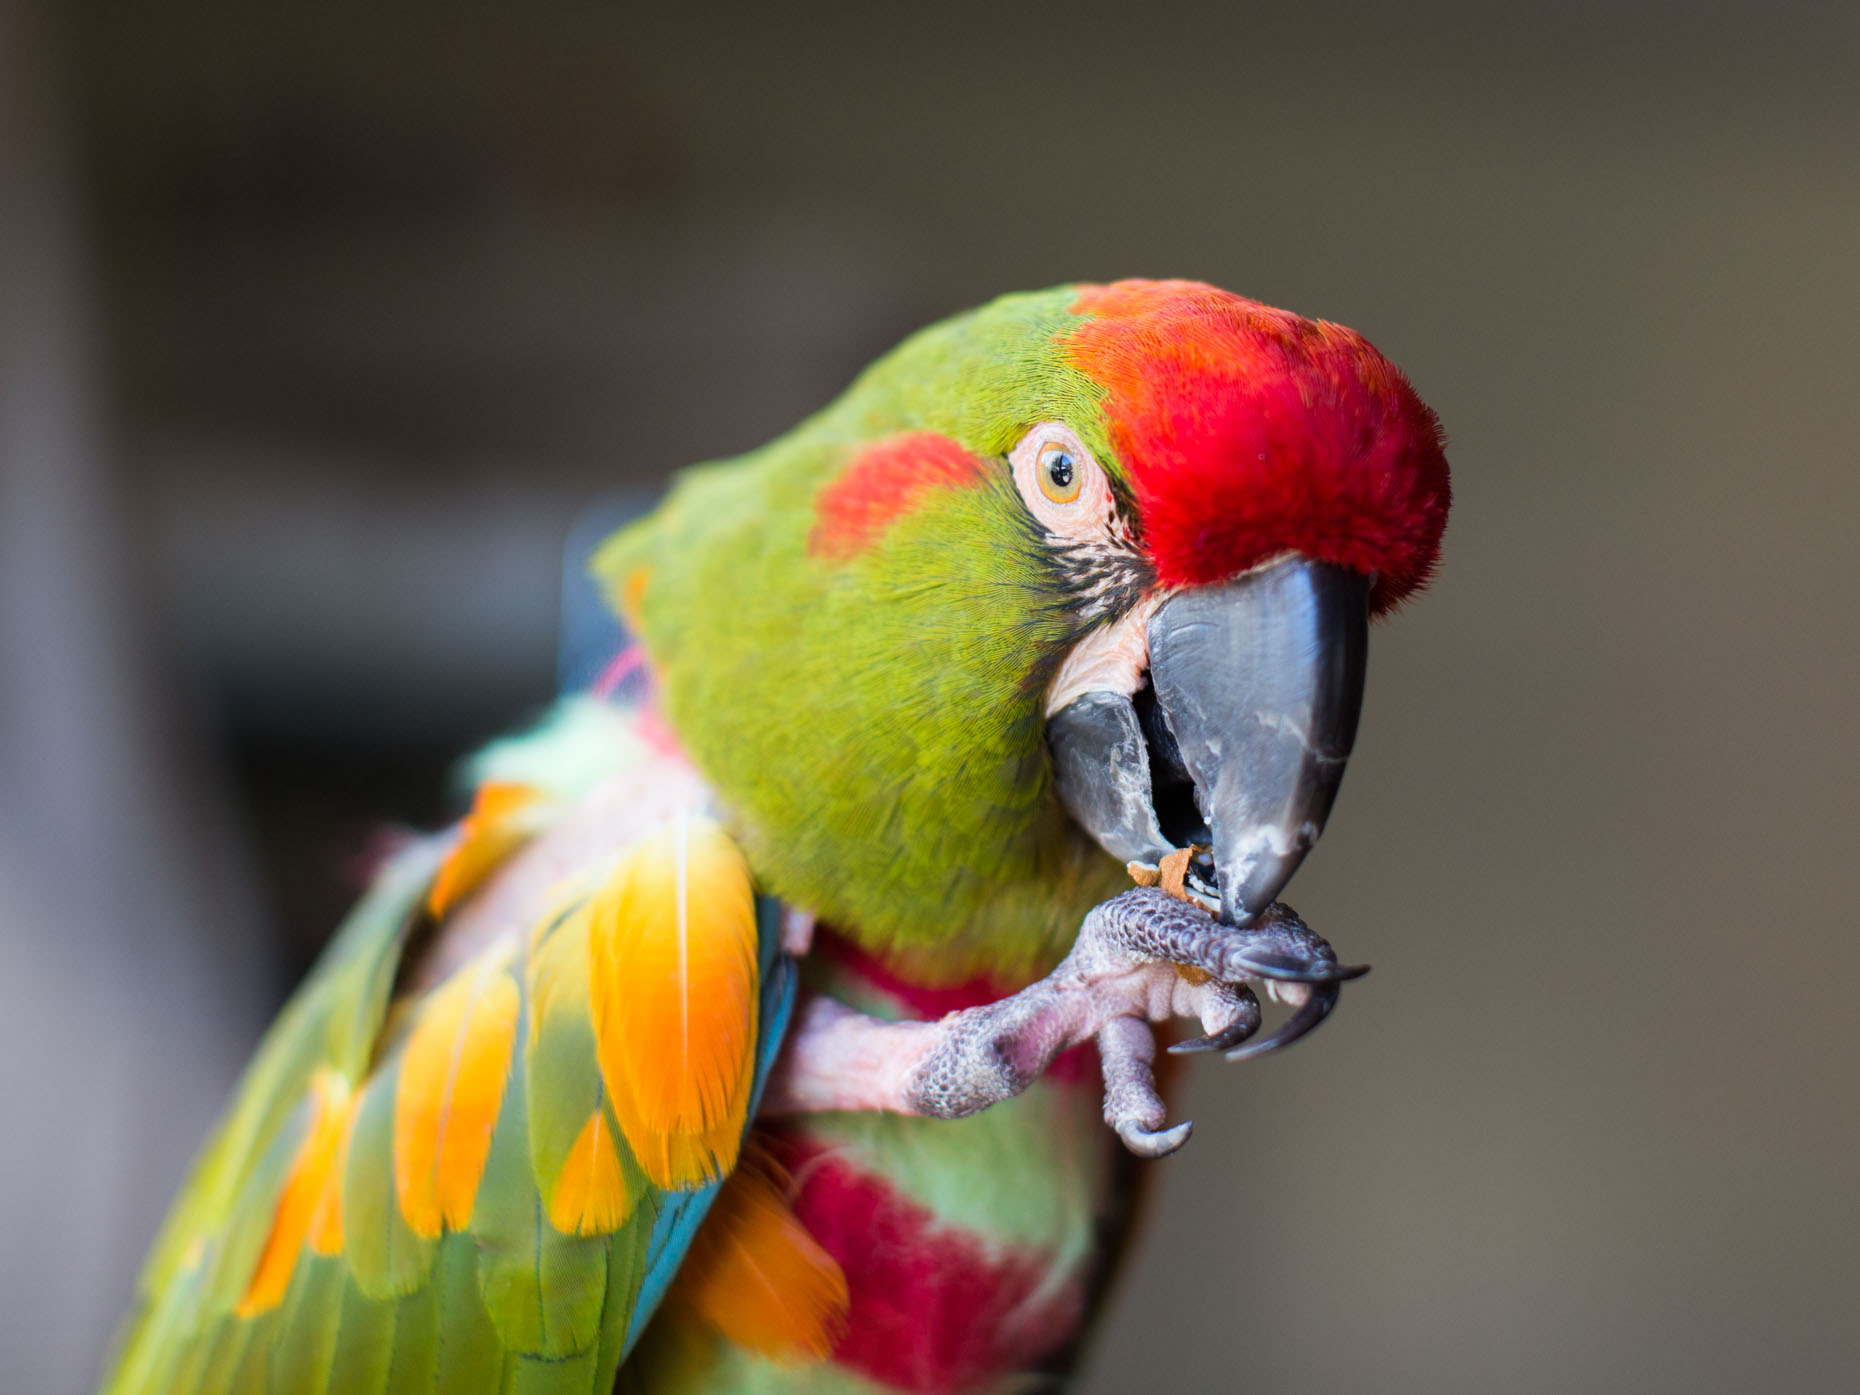 Commercial Animal Photography | Parrot Eating by Mark Rogers